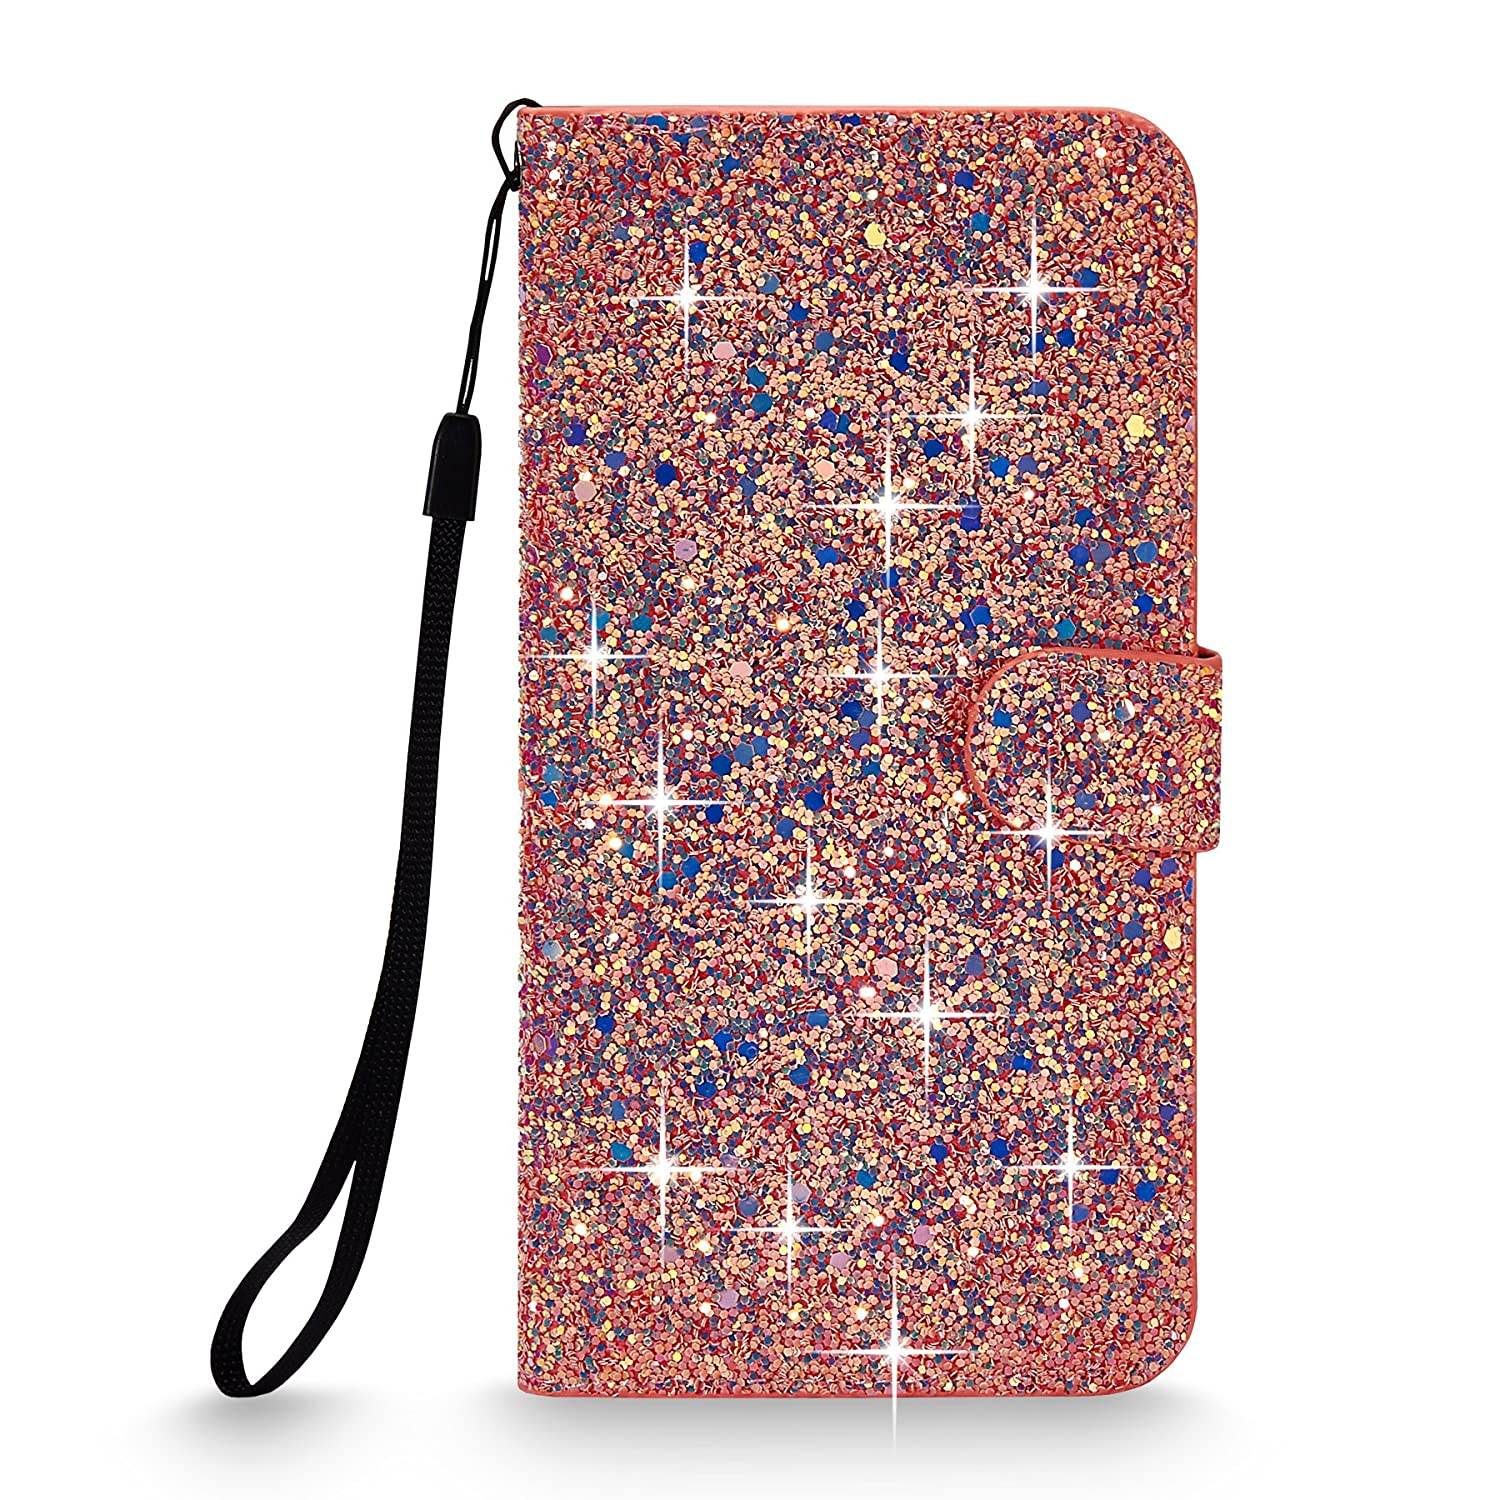 iPhone Cellularvilla Glitter Leather Protective Image 2